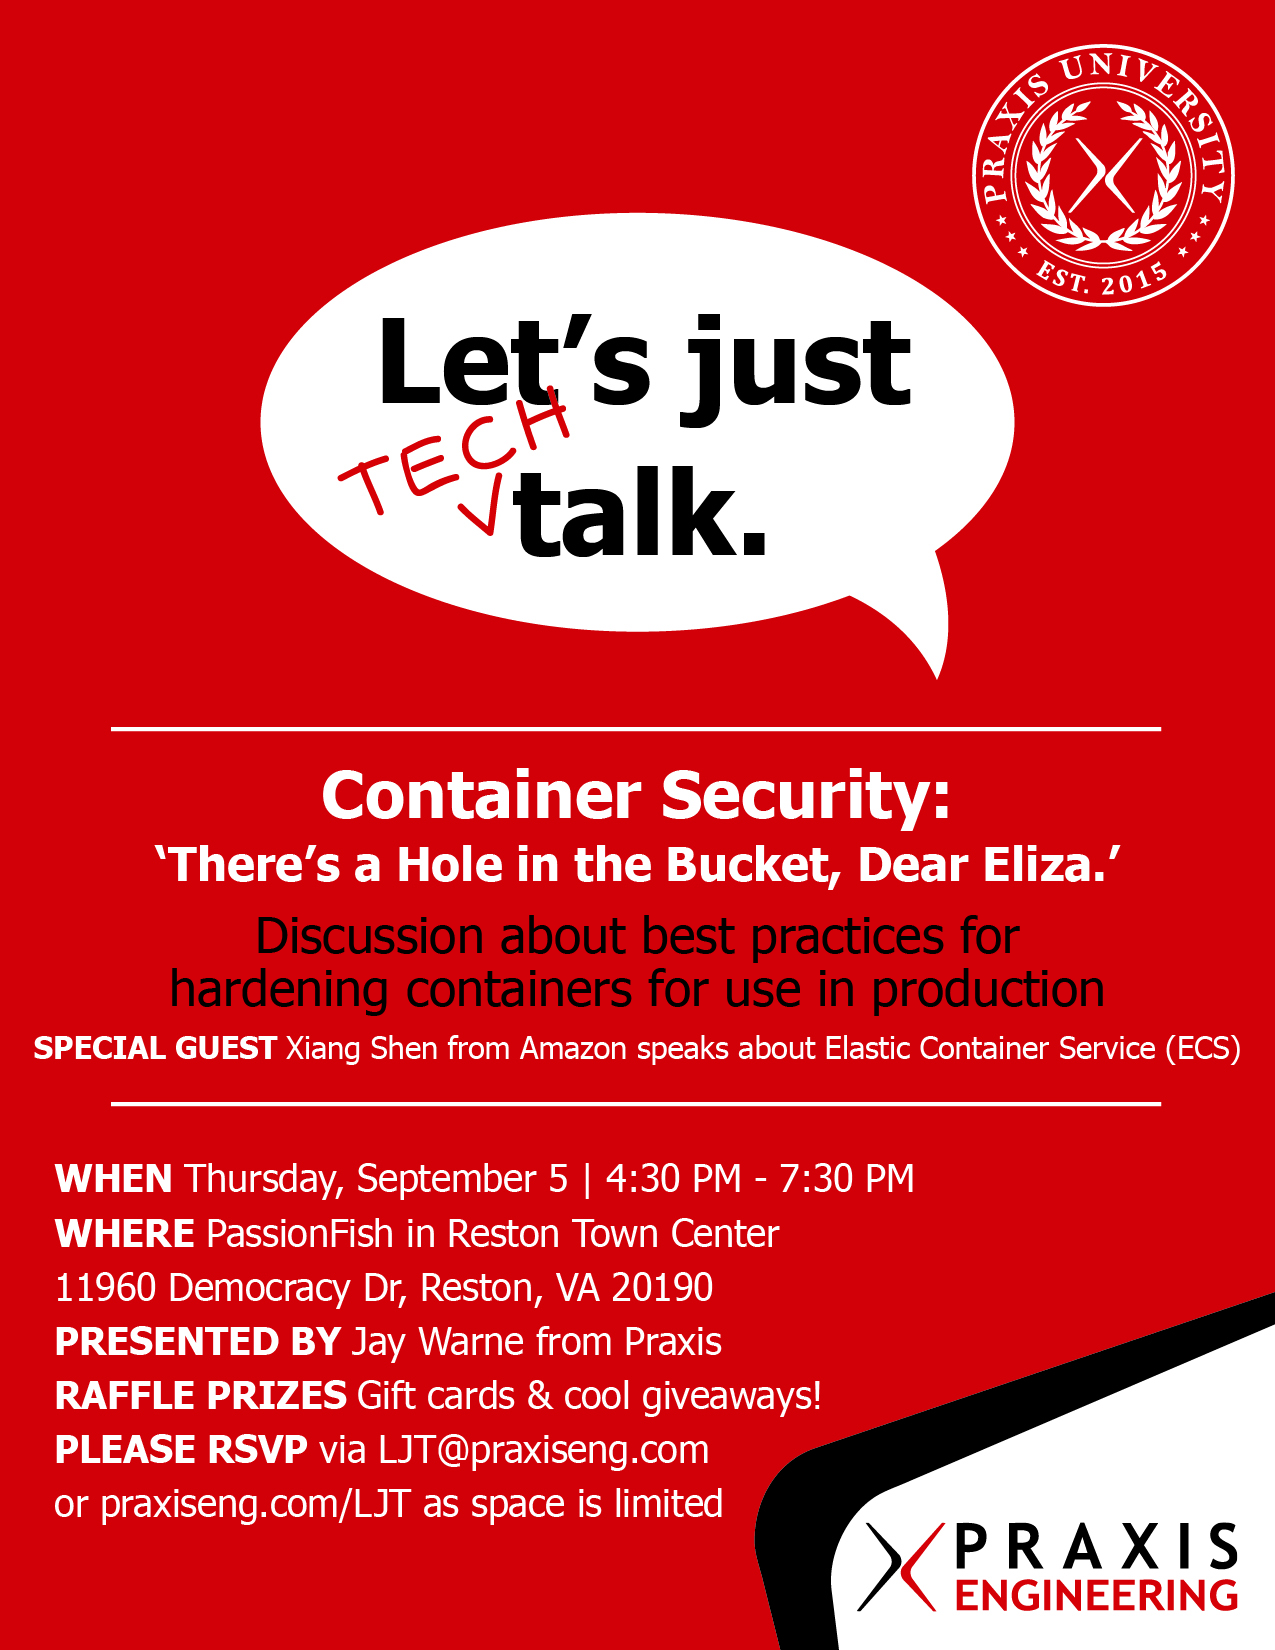 LJT_ContainerSecurity_Sept5.jpg